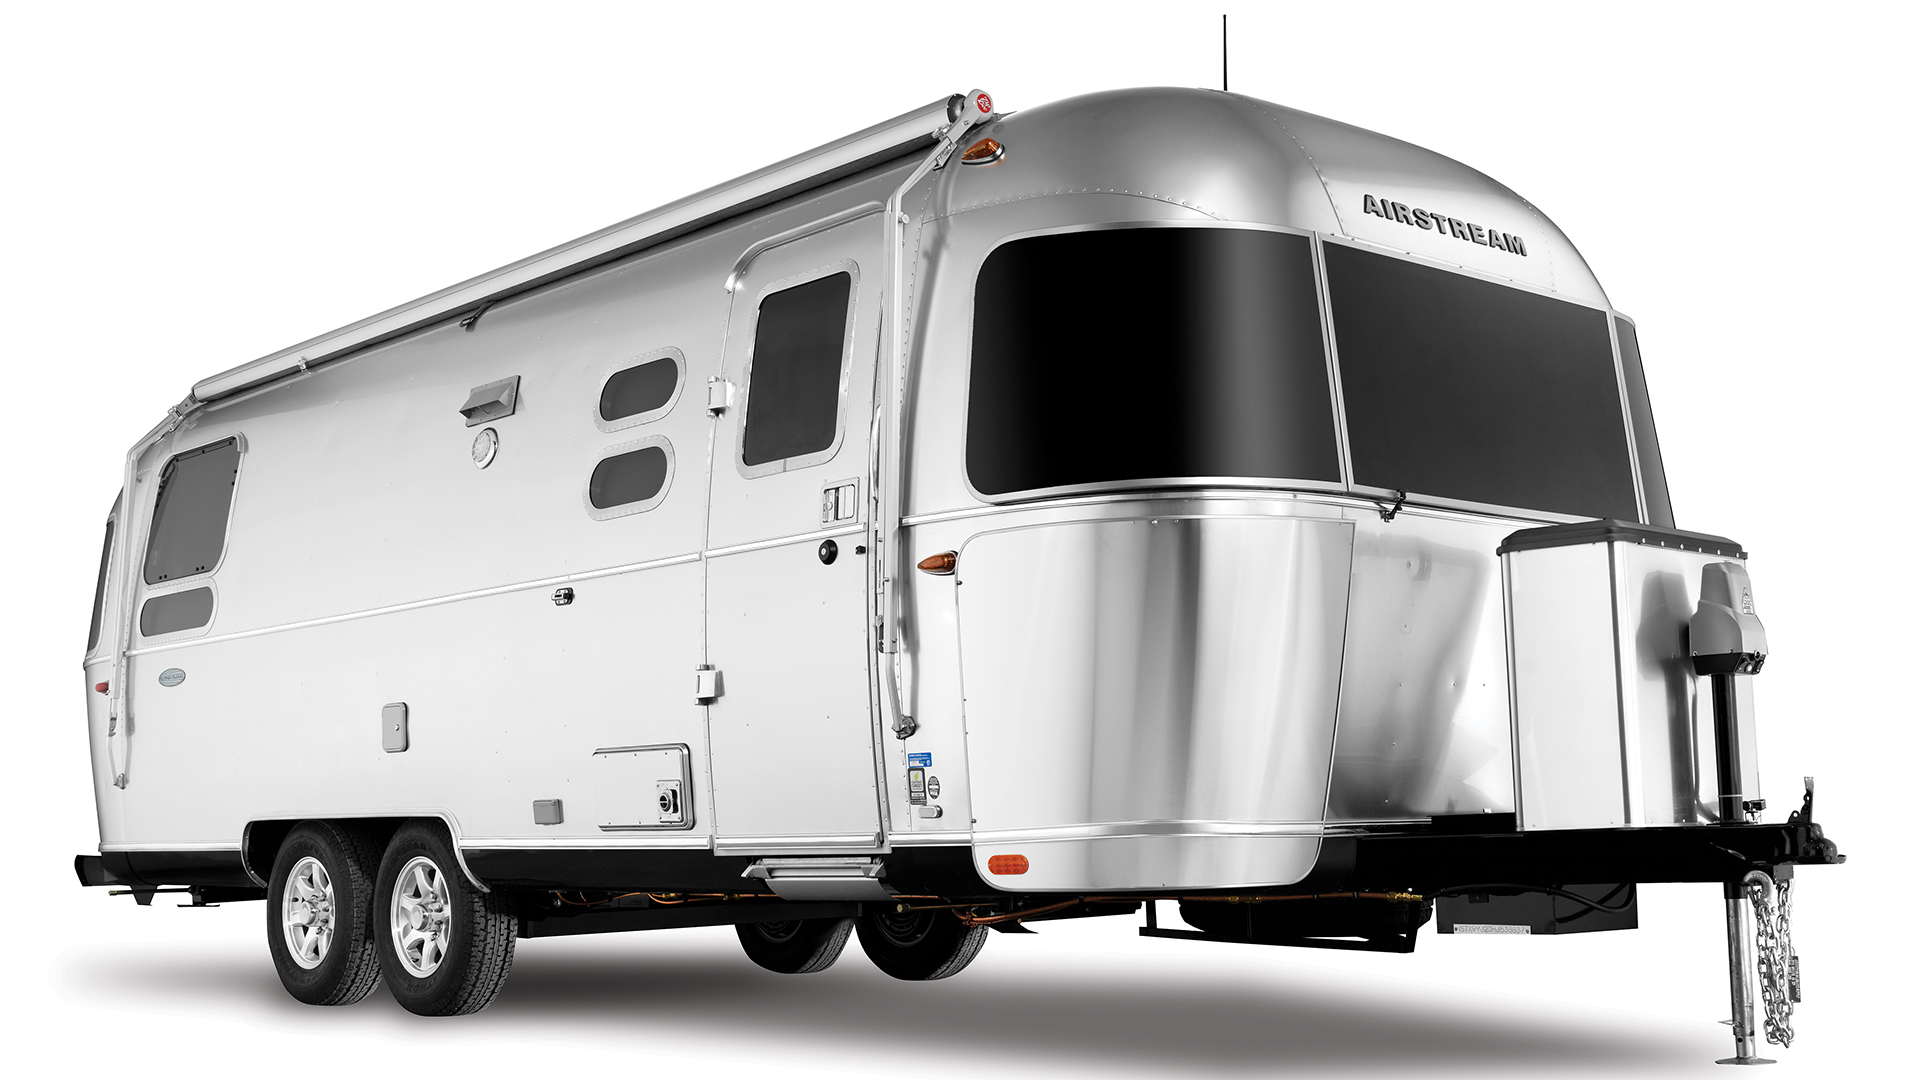 Airstream-Flying-Cloud-25RB-Travel-Trailer-Exterior-Bug